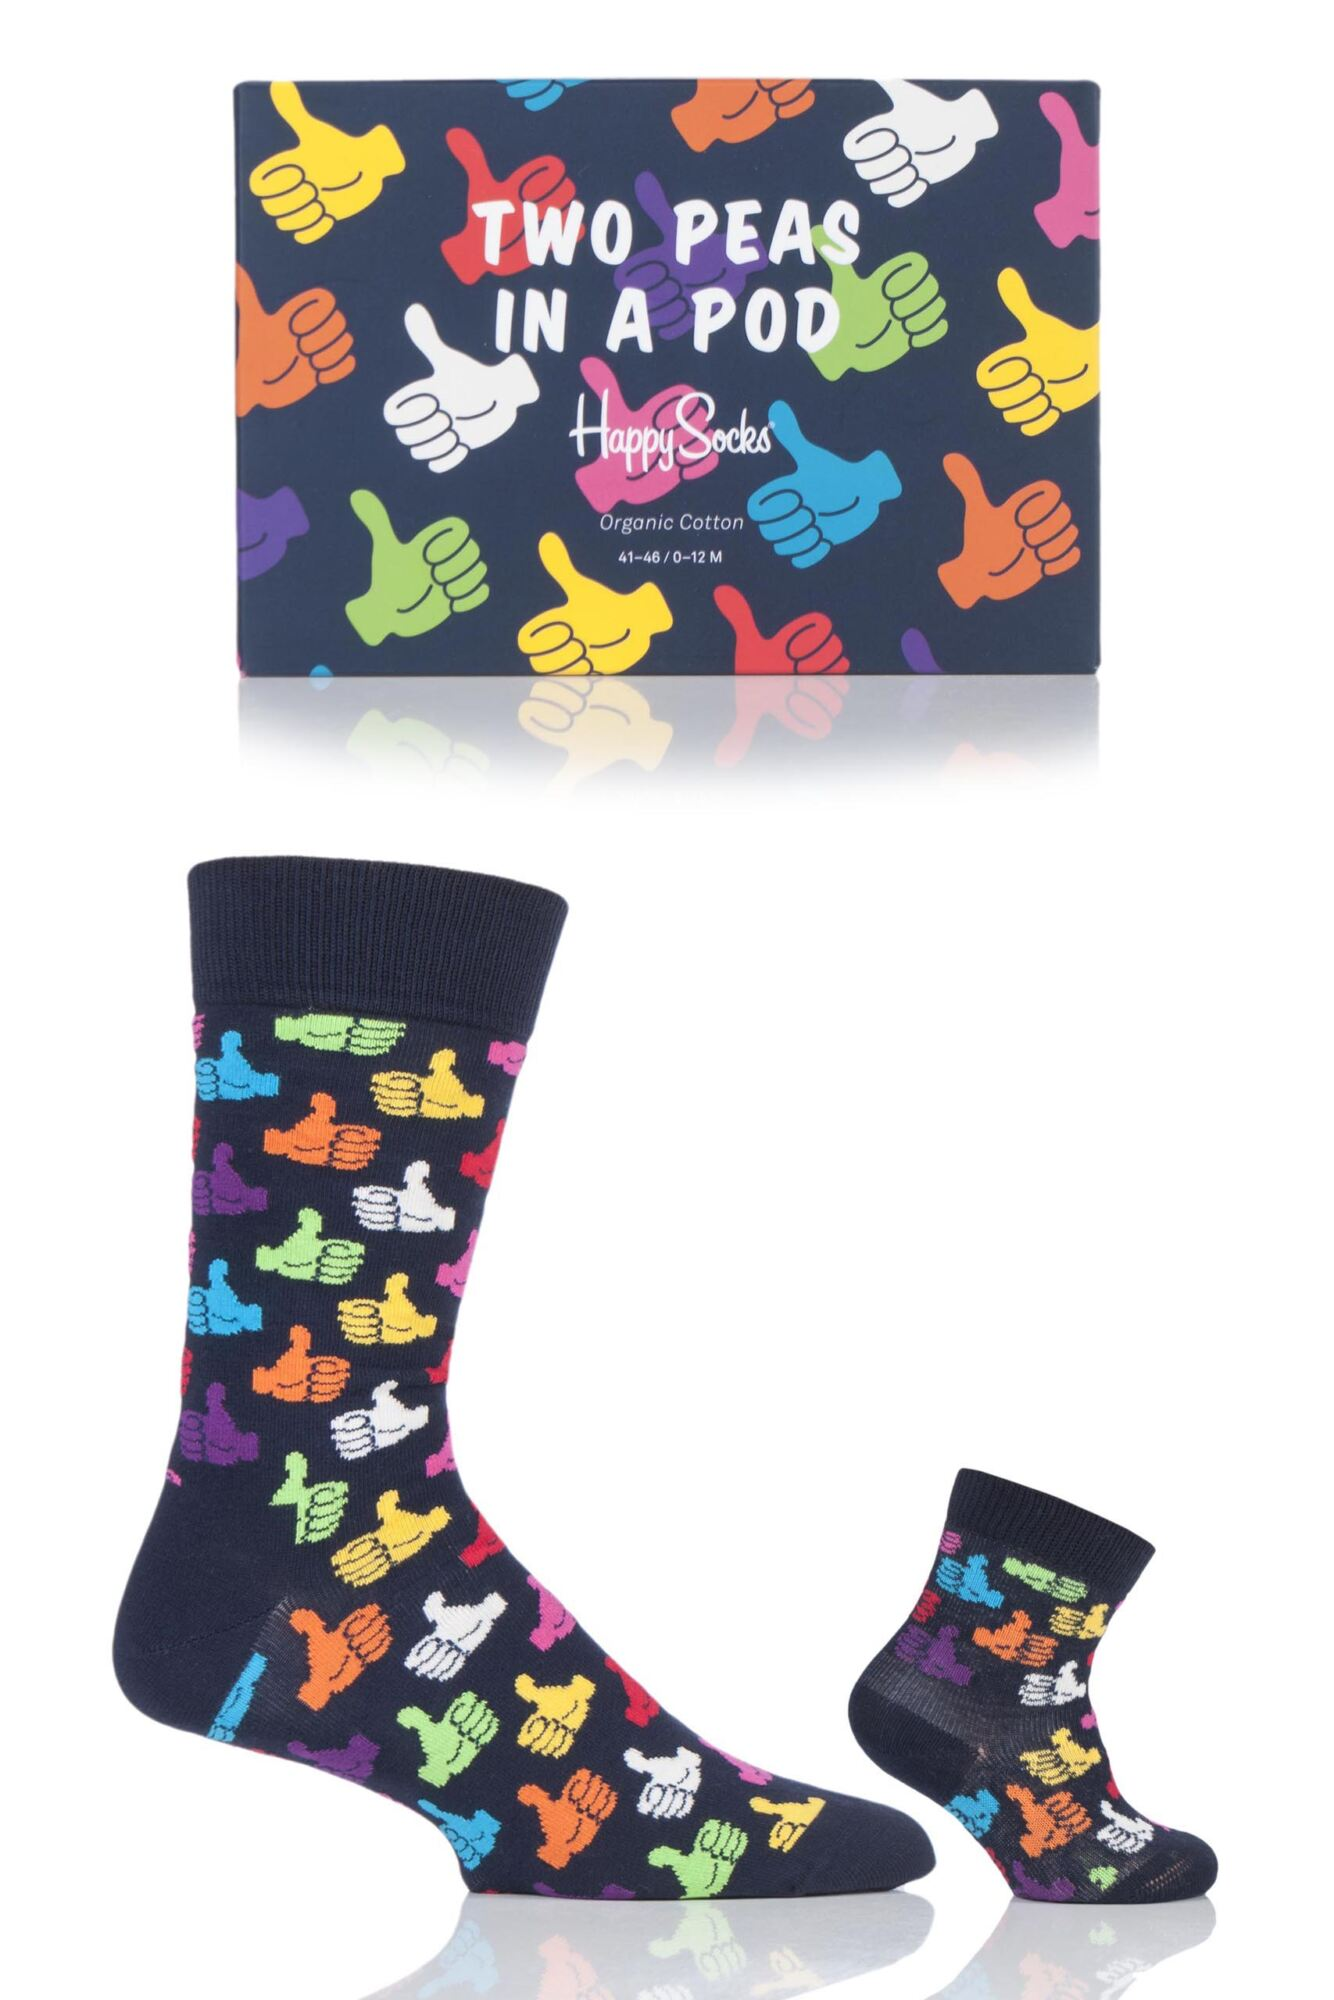 2 Pair Thumbs Up Matching Two Peas In A Pod Socks In Gift Box Men's Ladies and Kids - Happy Socks